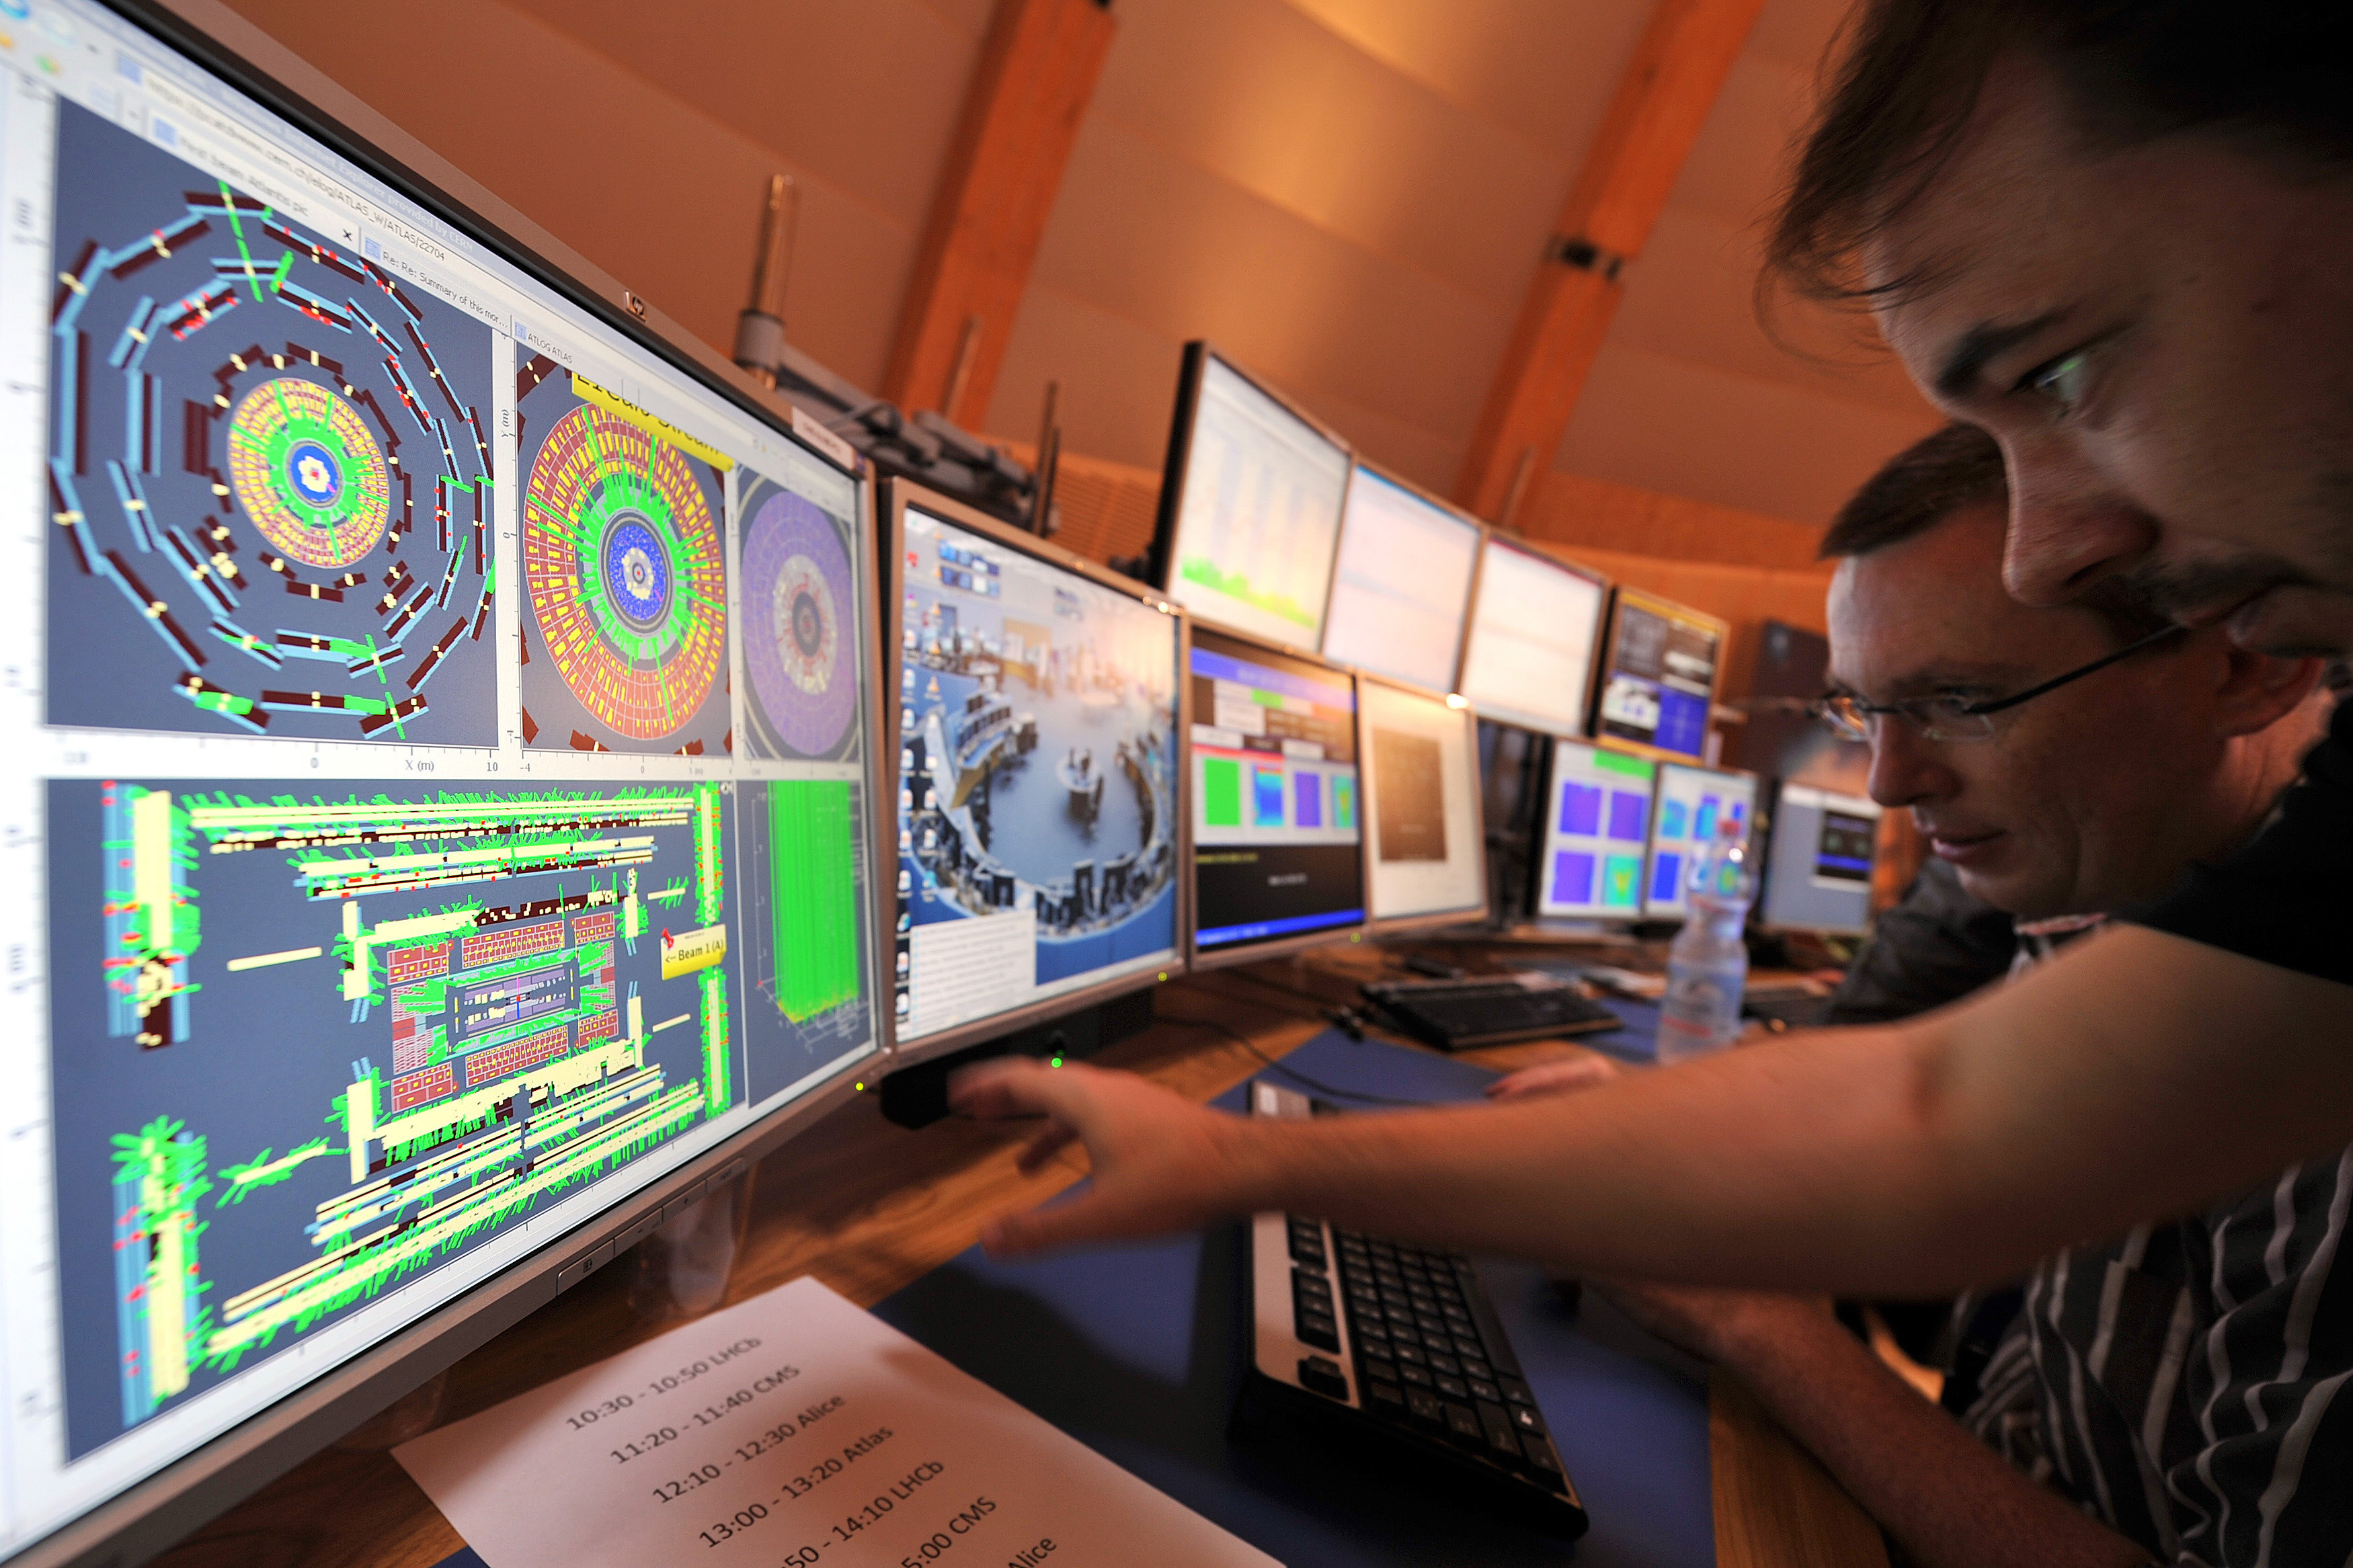 Scientists look at a computer screen at the control centre of the CERN in Geneva September 10, 2008. Scientists at the European Organisation for Nuclear Research (CERN) started up a huge particle-smashing machine on Wednesday, aiming to re-enact the conditions of the